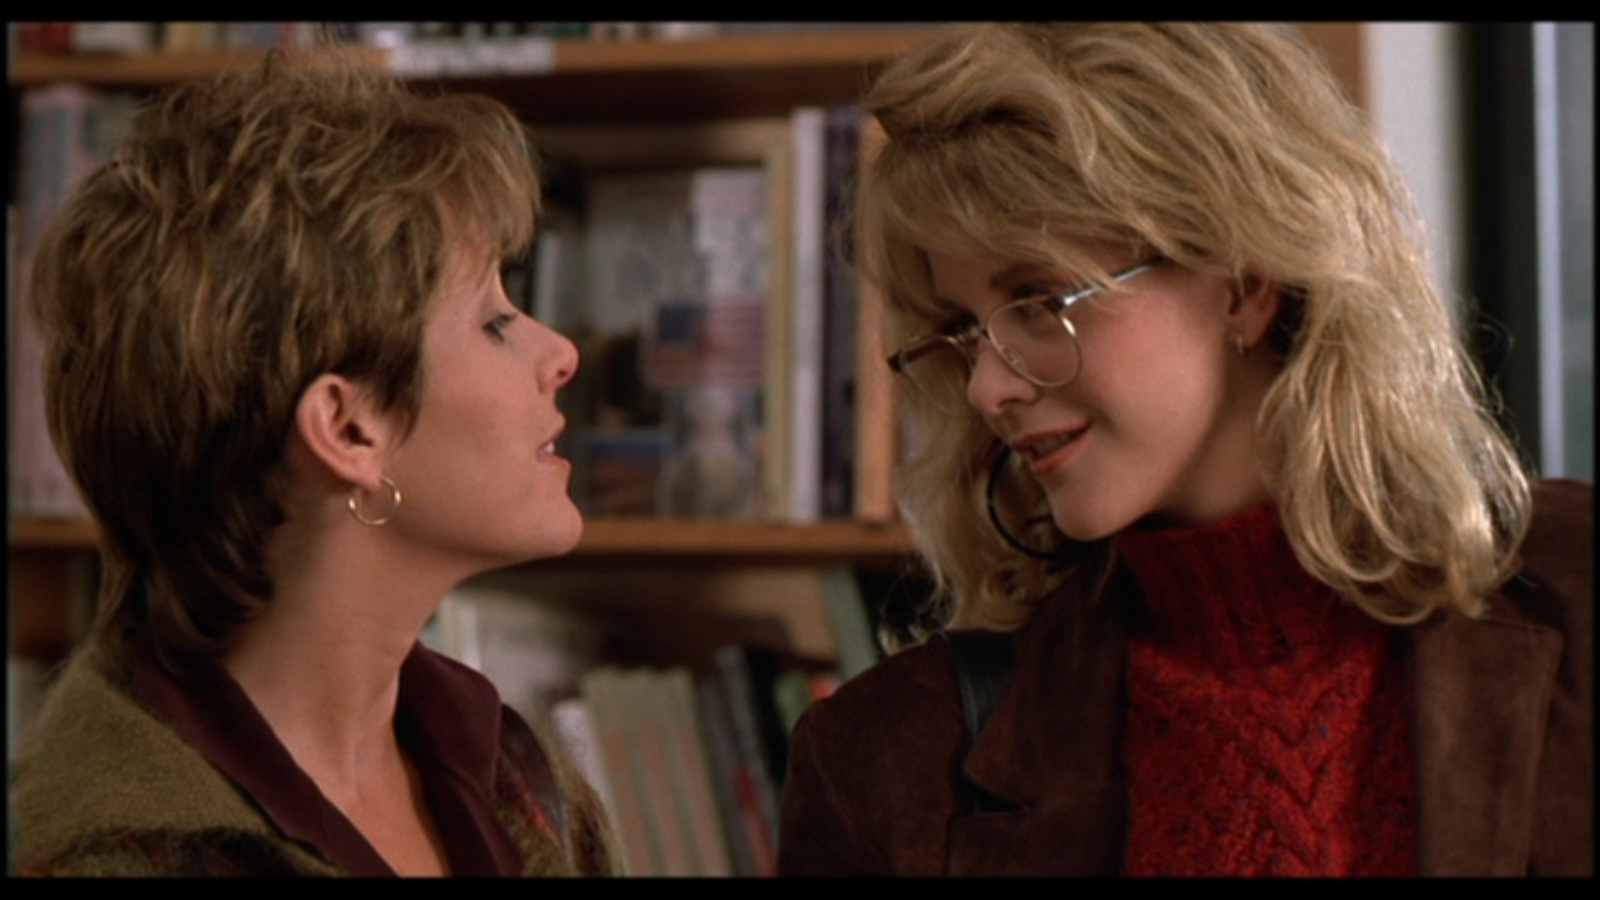 essay on when harry met sally When harry met sally essay 1 id: top14413816 analysis of the genre and narrative conventions of a film the following paper is going to analyse the use of the genre and narrative conventions in the film when harry met sally(1989.